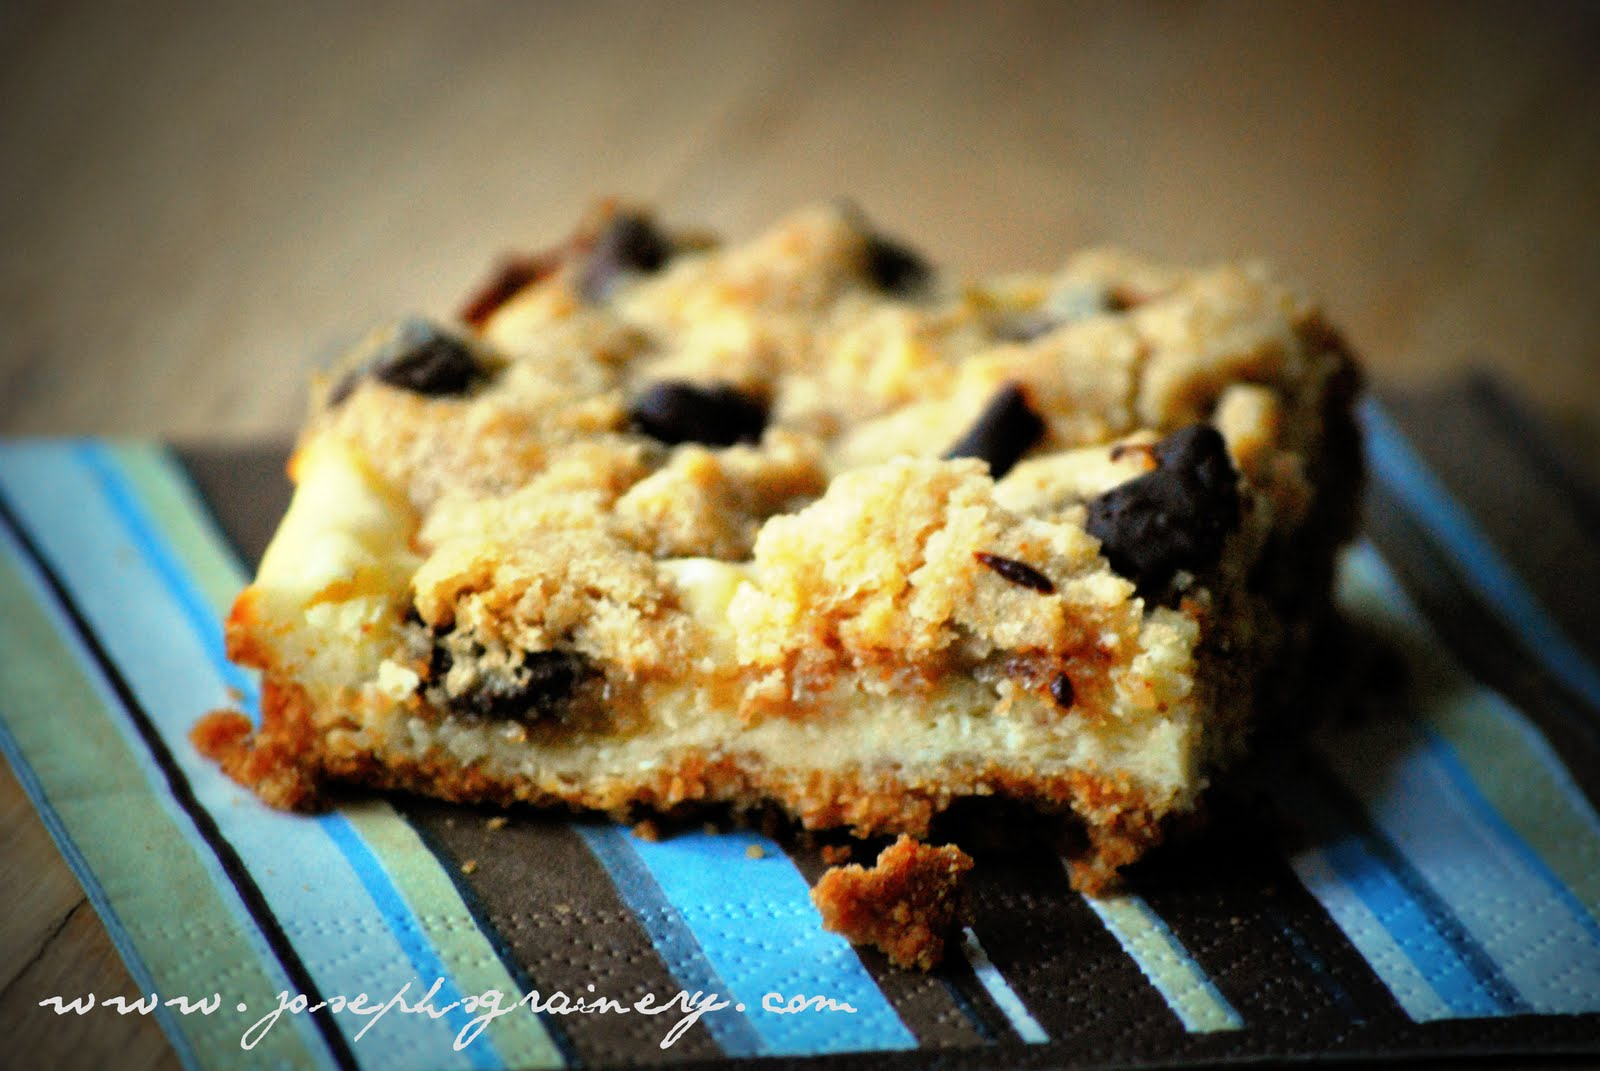 Joseph's Grainery: Chocolate Chip Cookie Dough Cheesecake Bars